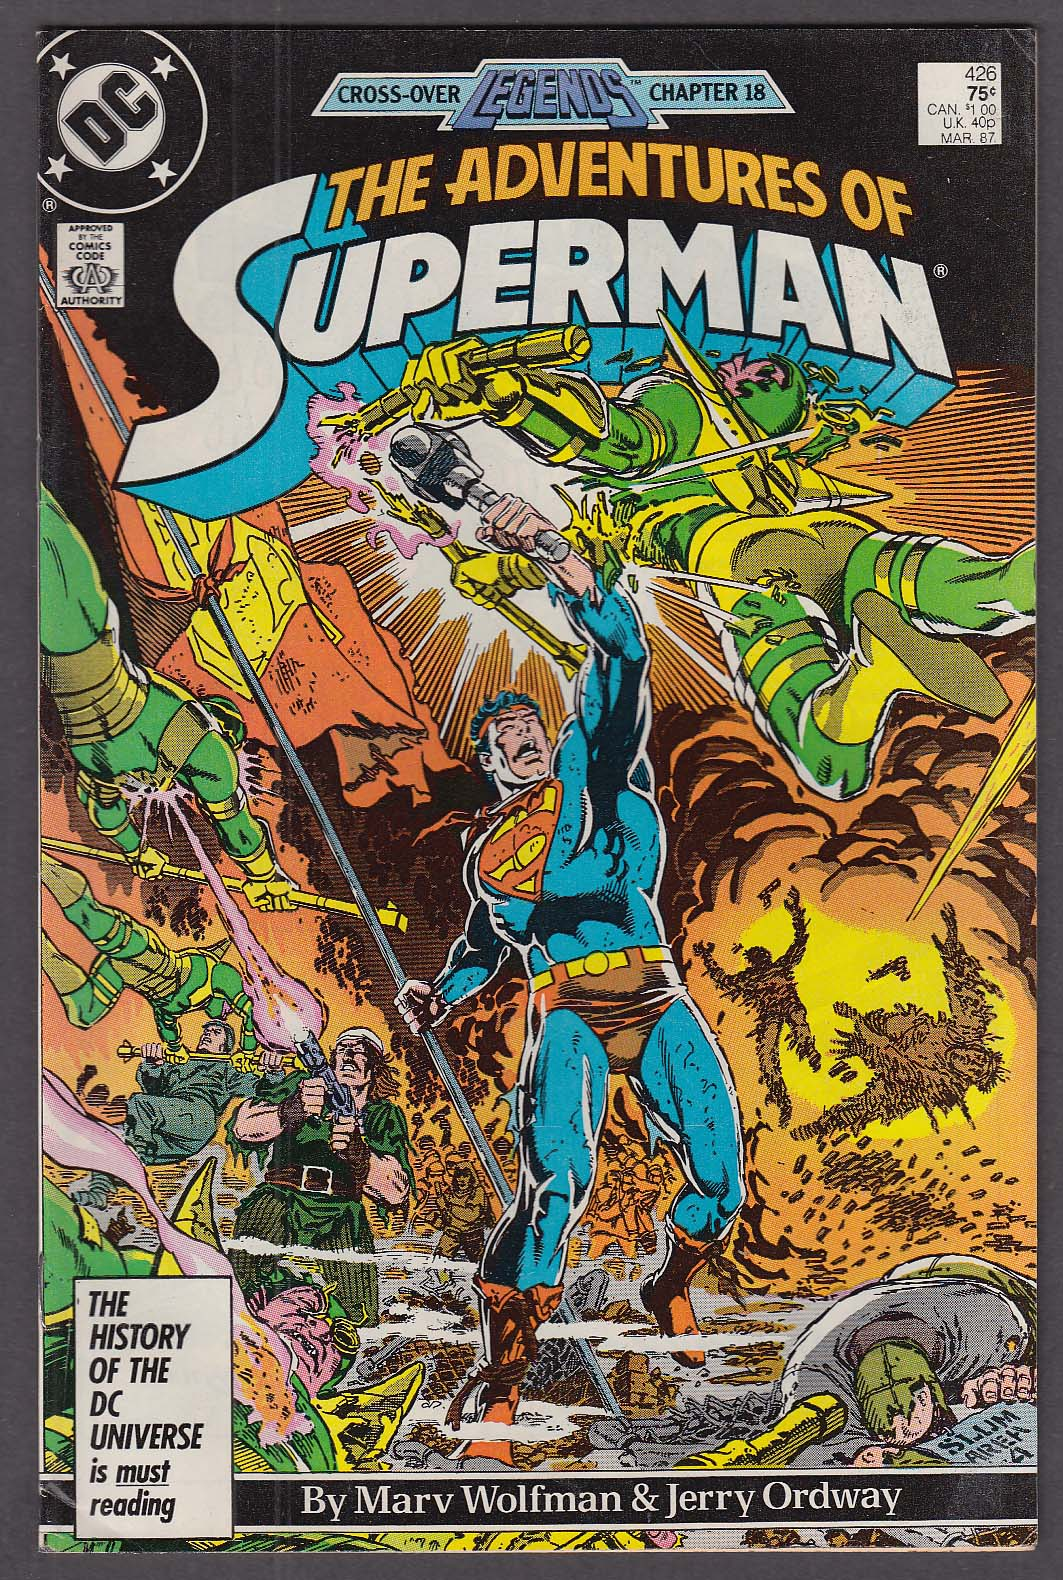 ADVENTURES of SUPERMAN #426 DC comic book 3 1987 Legends Chapter 18